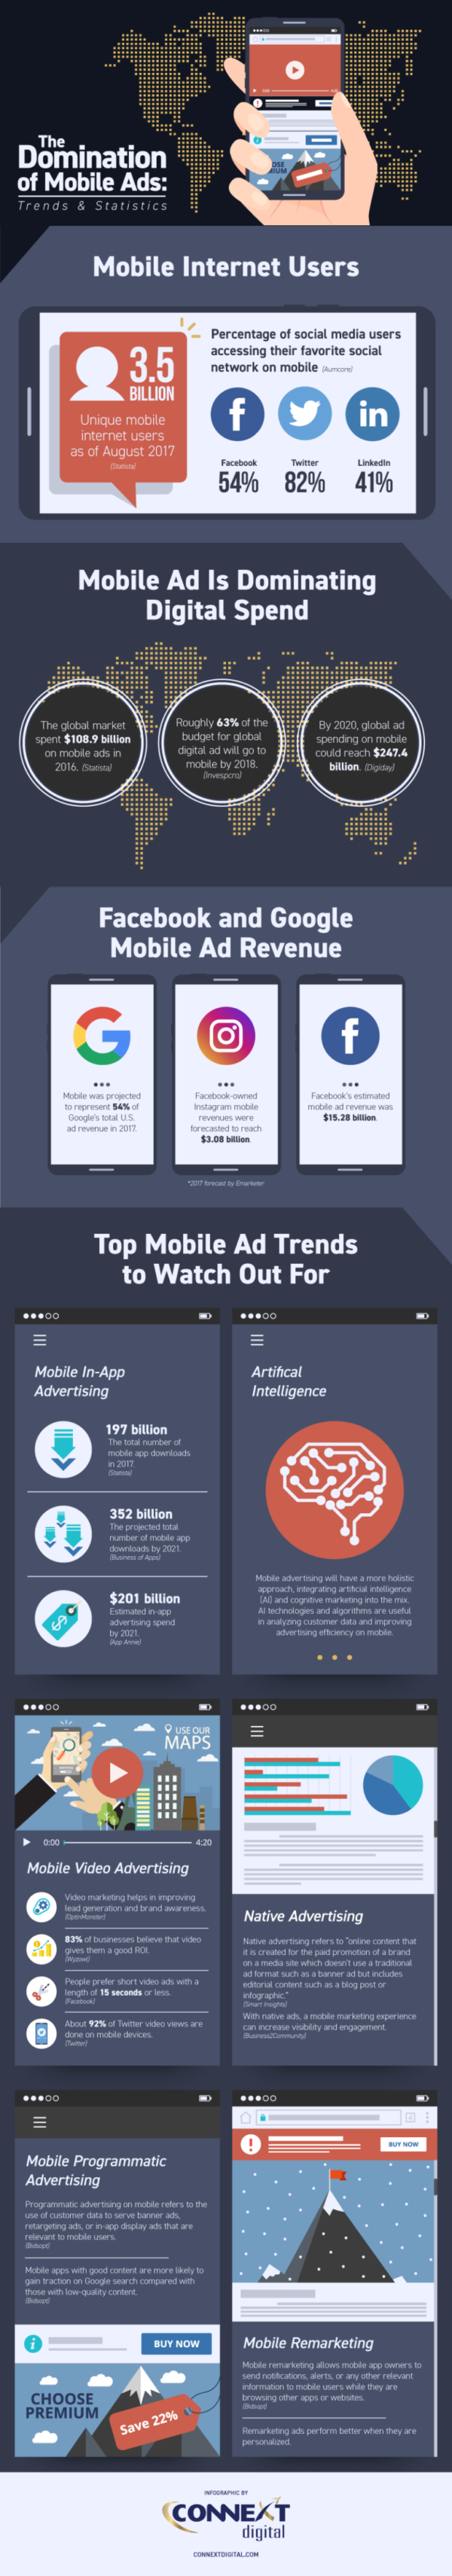 The Domination of Mobile Ads: Statistics and Trends ...